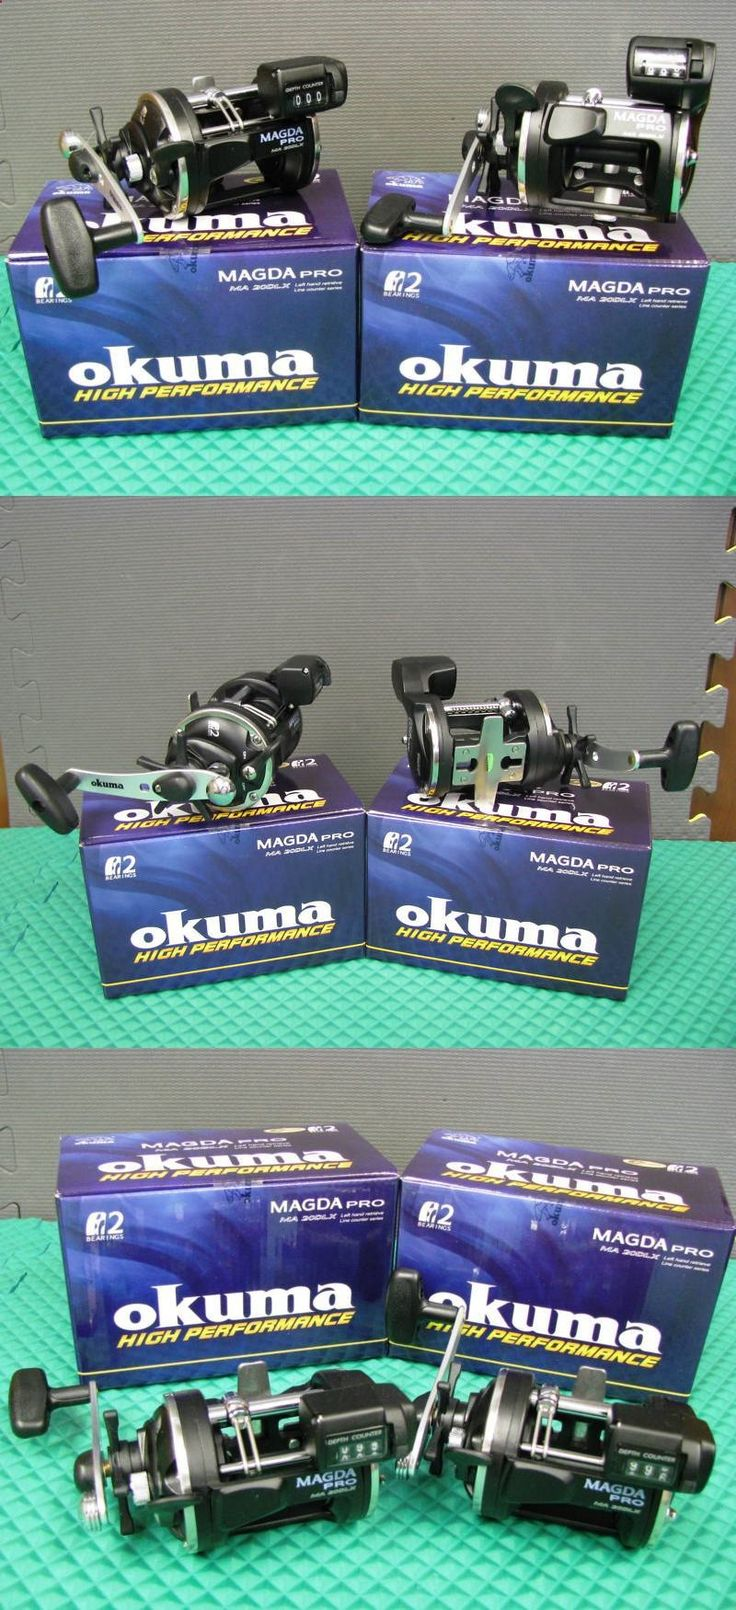 Other Fishing Reels 166159: Okuma Magda Pro Ma 20Dlx Left Hand Retrieve Line Counter Trolling Reel 2 Pack -> BUY IT NOW ONLY: $94 on eBay!